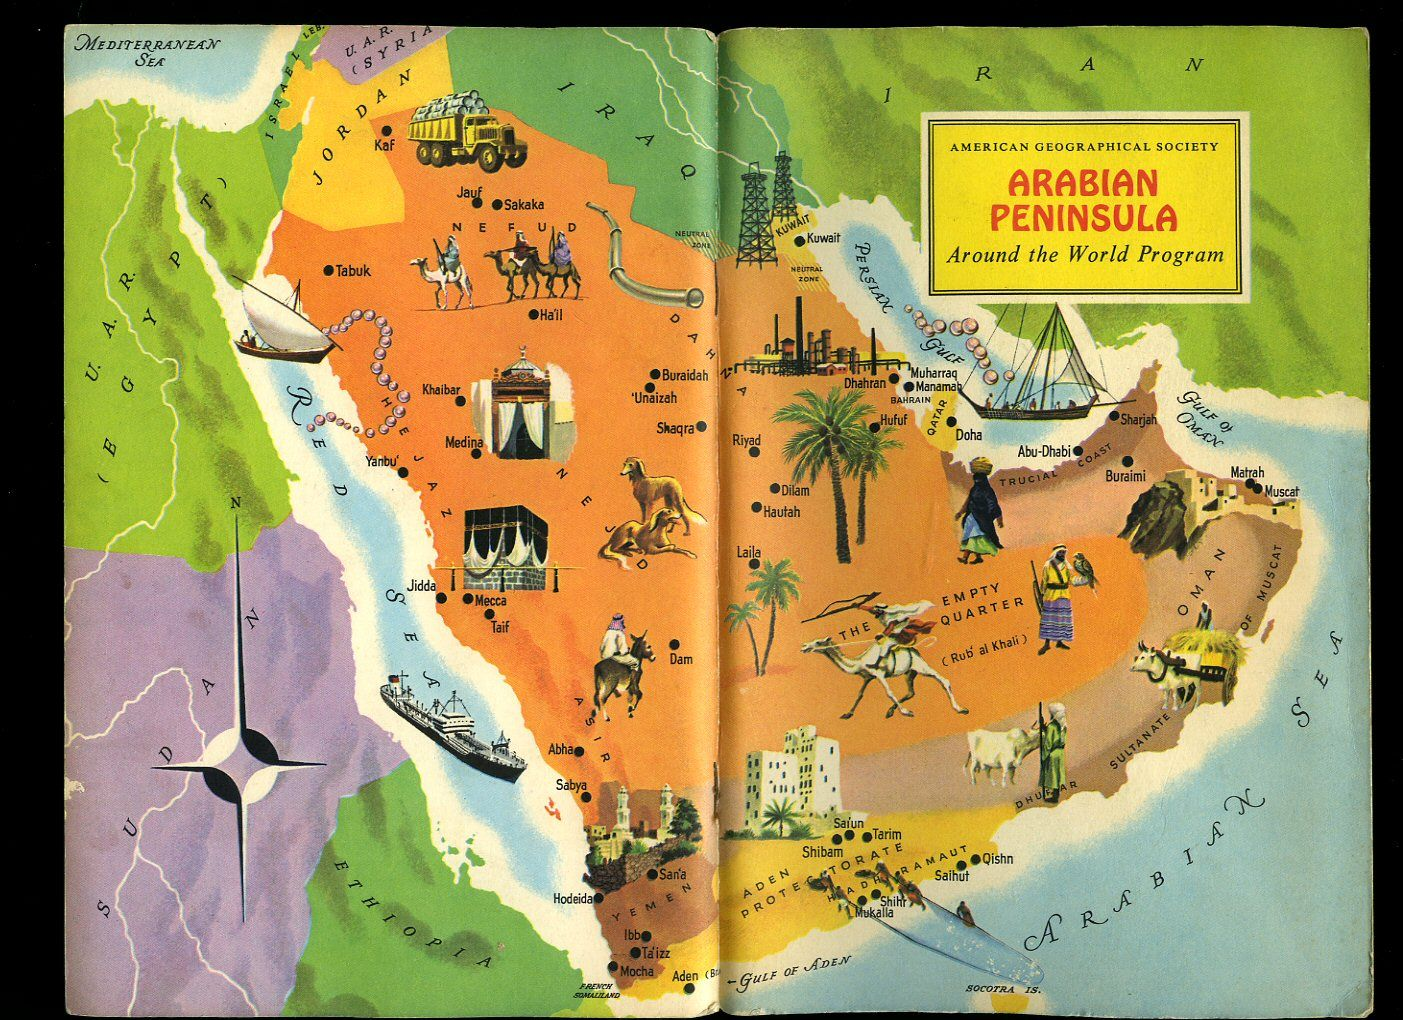 Arabian peninsula american geographical society around the world arabian peninsula american geographical society around the world program vintage map book cover gumiabroncs Choice Image